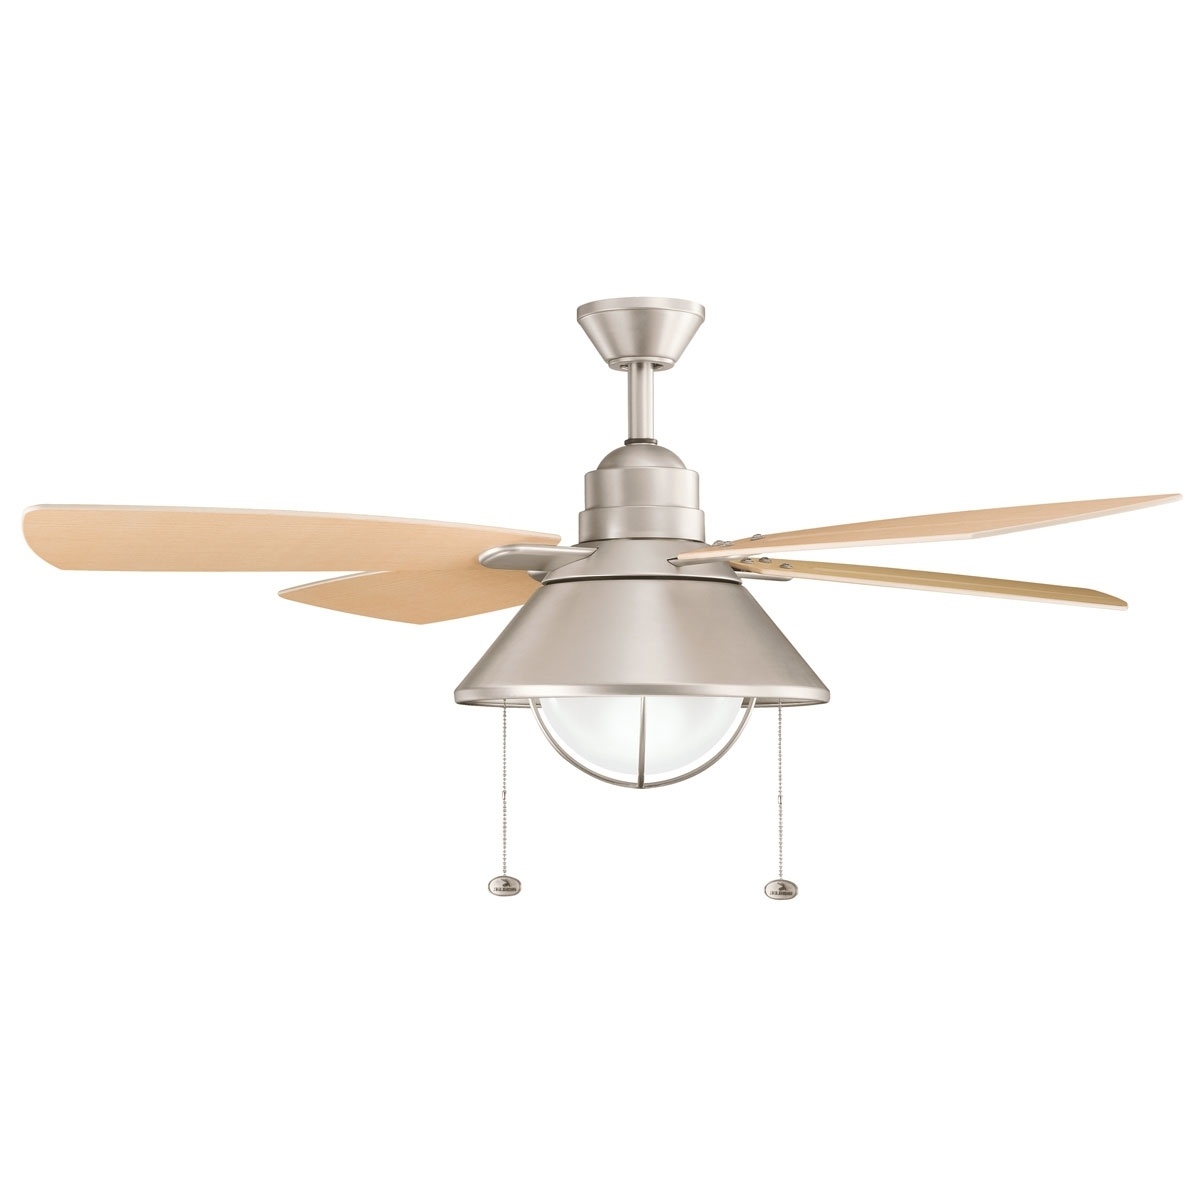 Ceiling: Fashionable Nautical Ceiling Fans To Give Your Room A Bold Intended For Popular Outdoor Themed Ceiling Lights (Gallery 6 of 20)